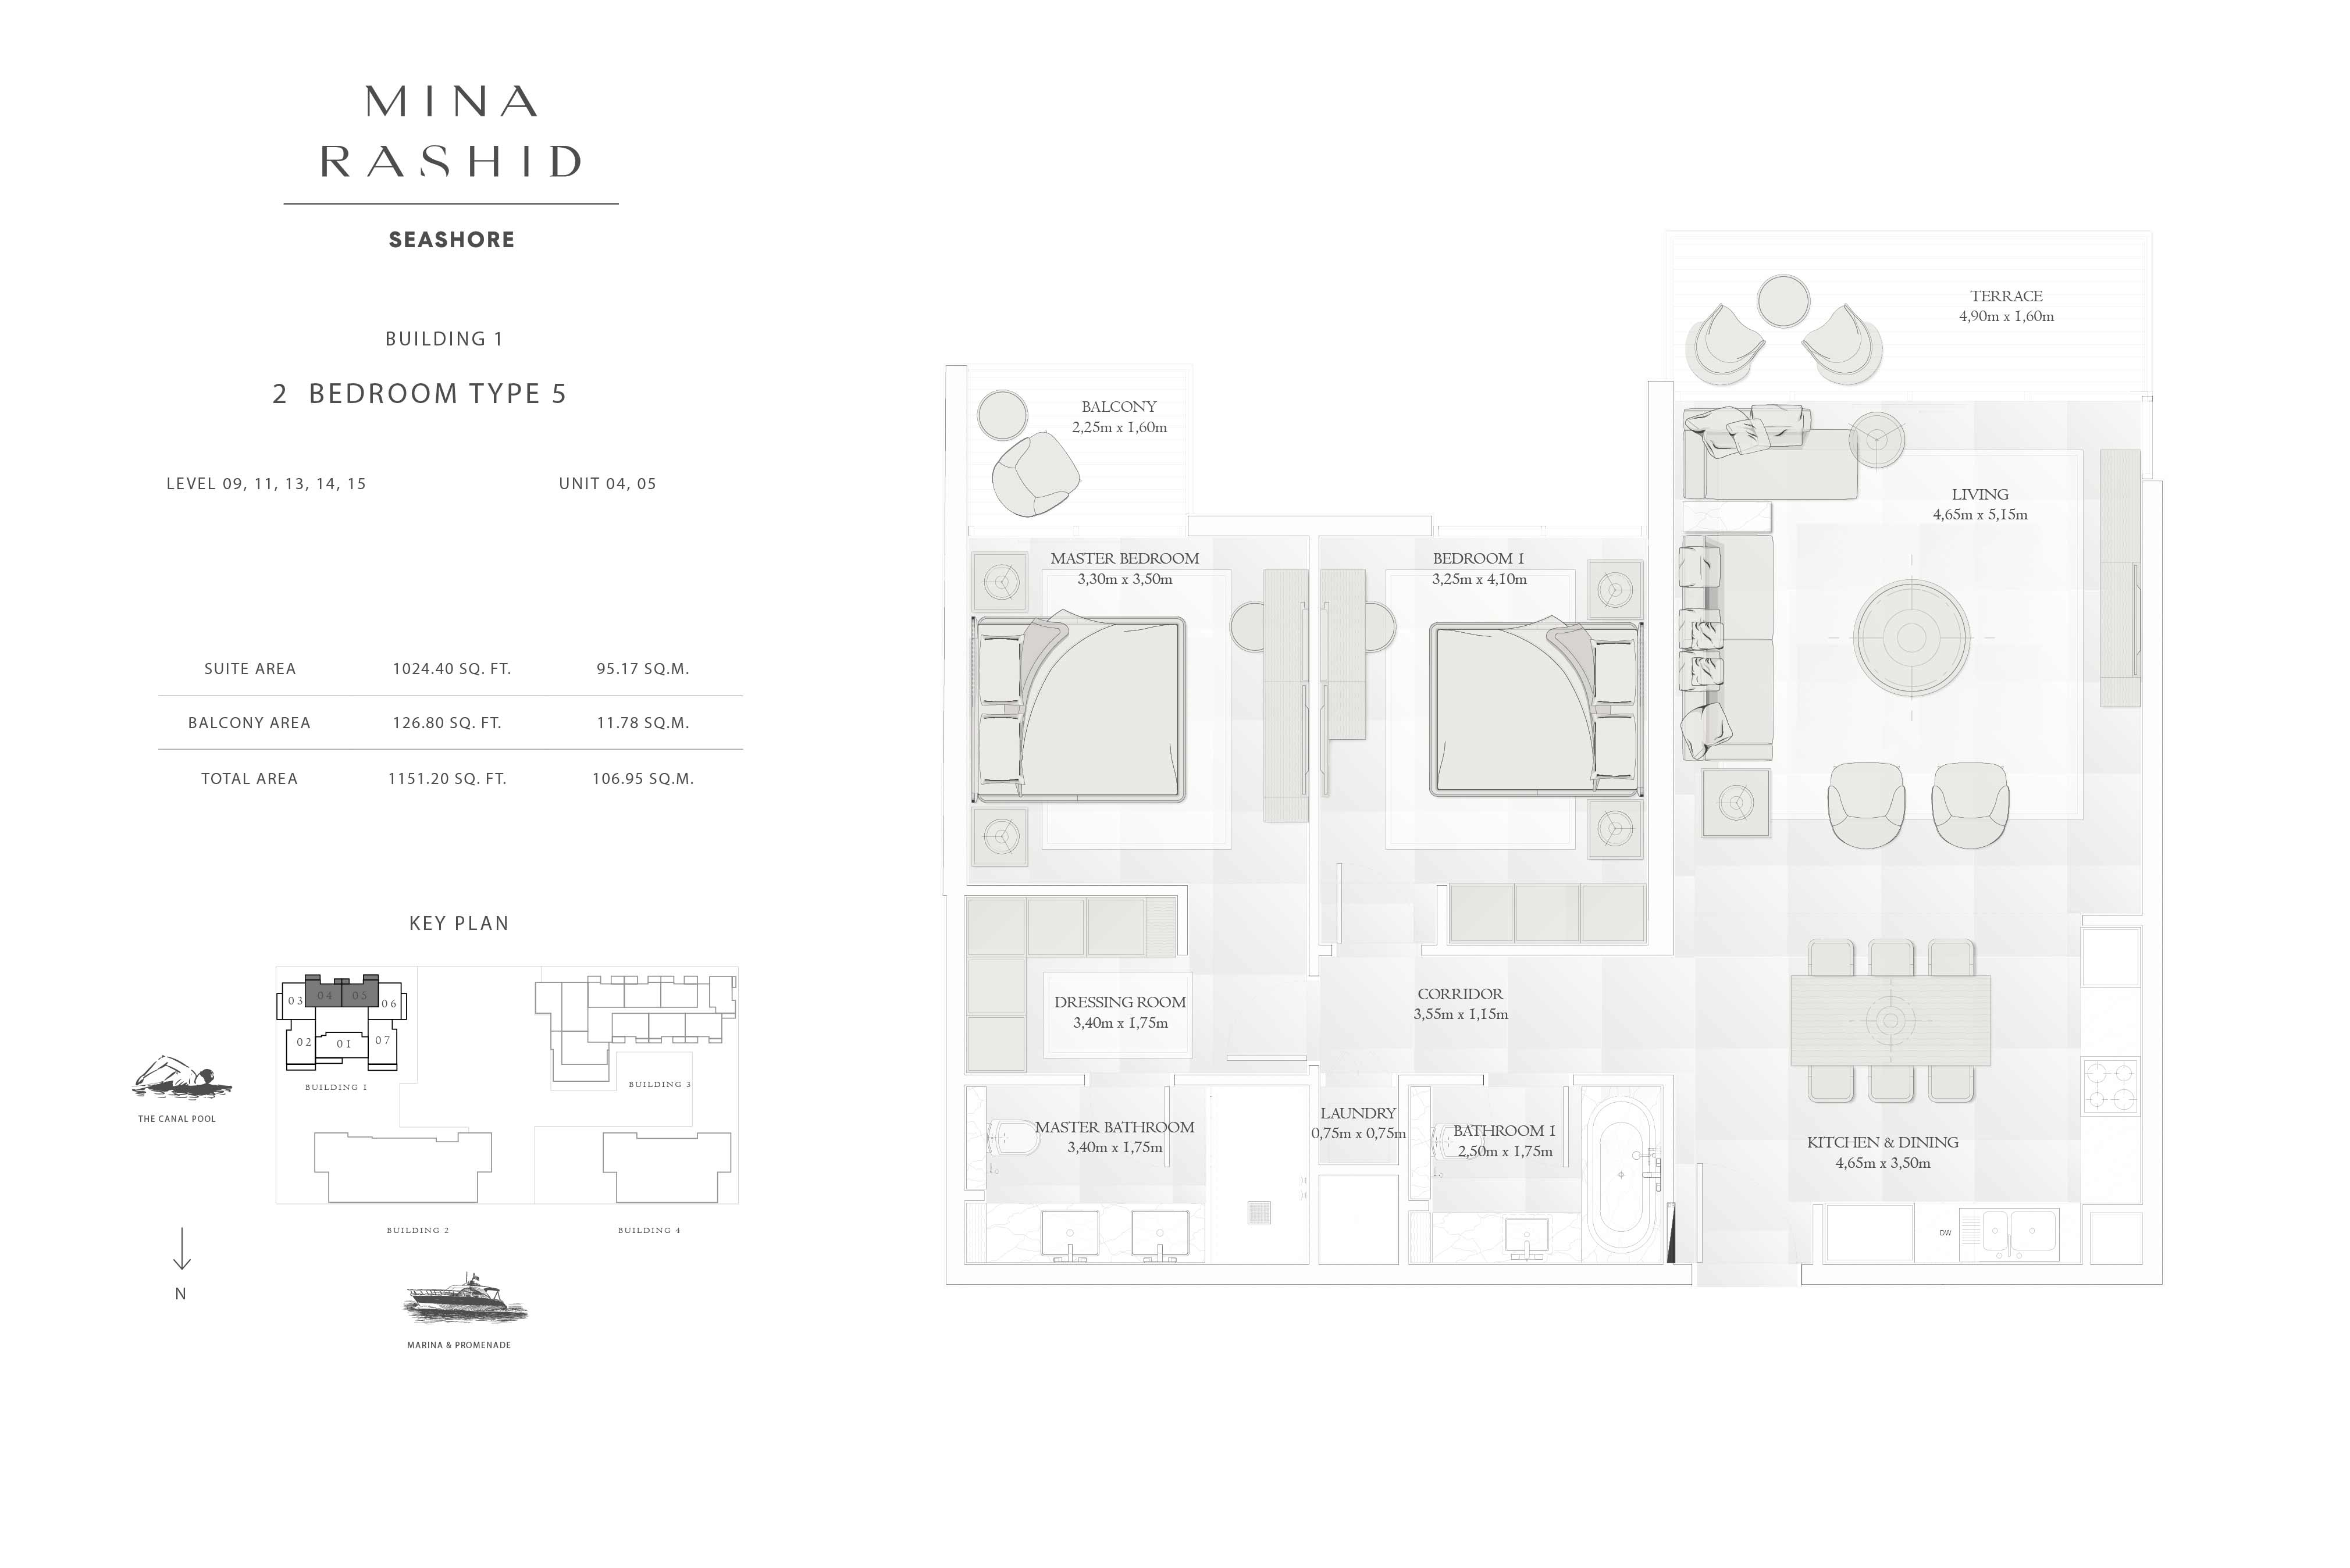 Building-1, 2-Bedroom-Type-5 Level-(9, 11, 13, 14, 15), Size-1151-Sq Ft